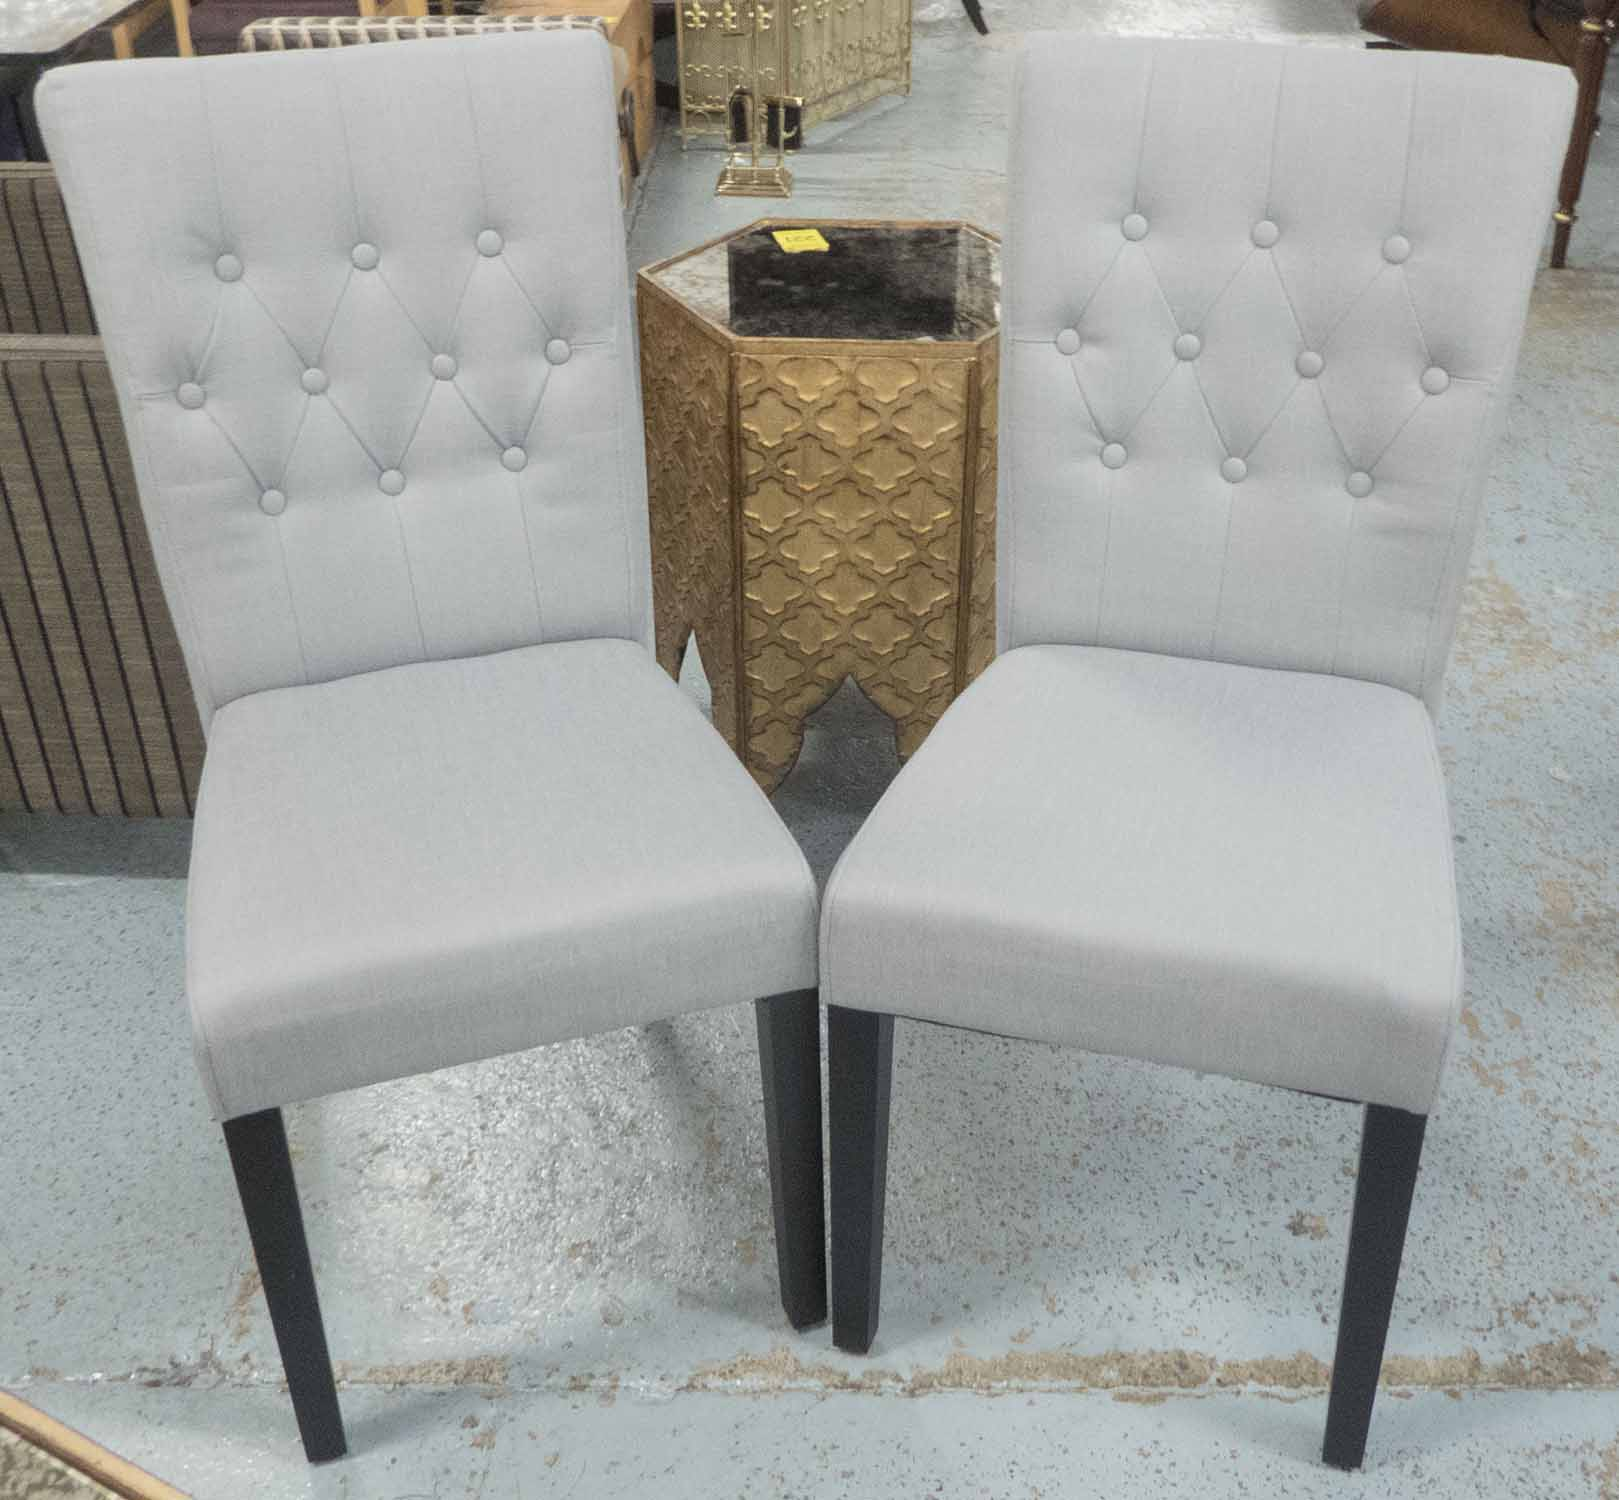 Lot 47 - DINING CHAIRS, a set of four with buttoned backs, in light blue upholstery on ebonised legs, 44cm W.